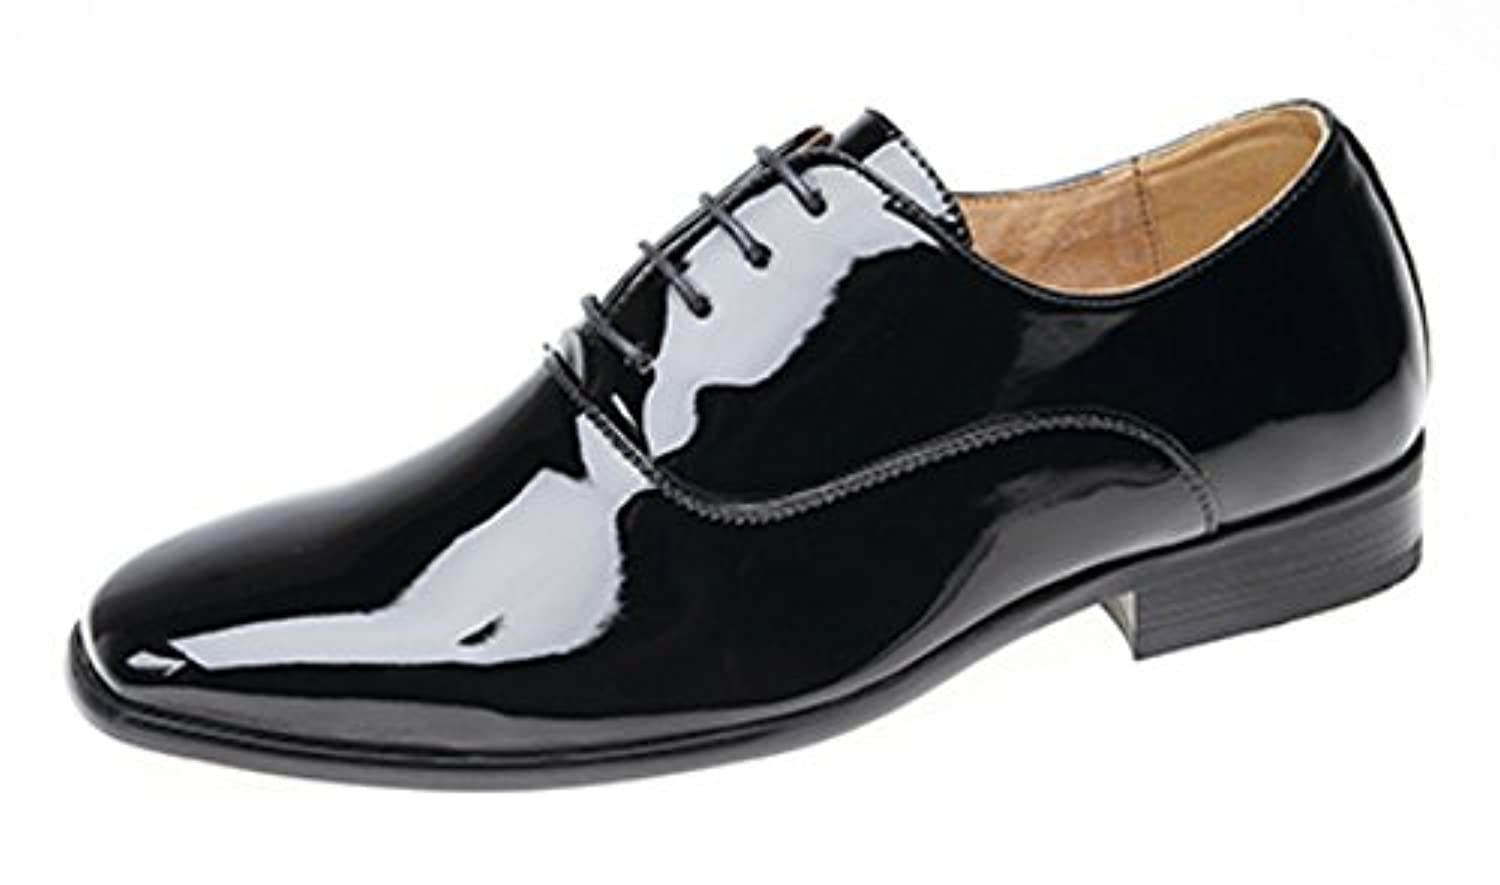 Junior Boys Smart Wedding Shoes/Ballroom/Formal. Patent Finish